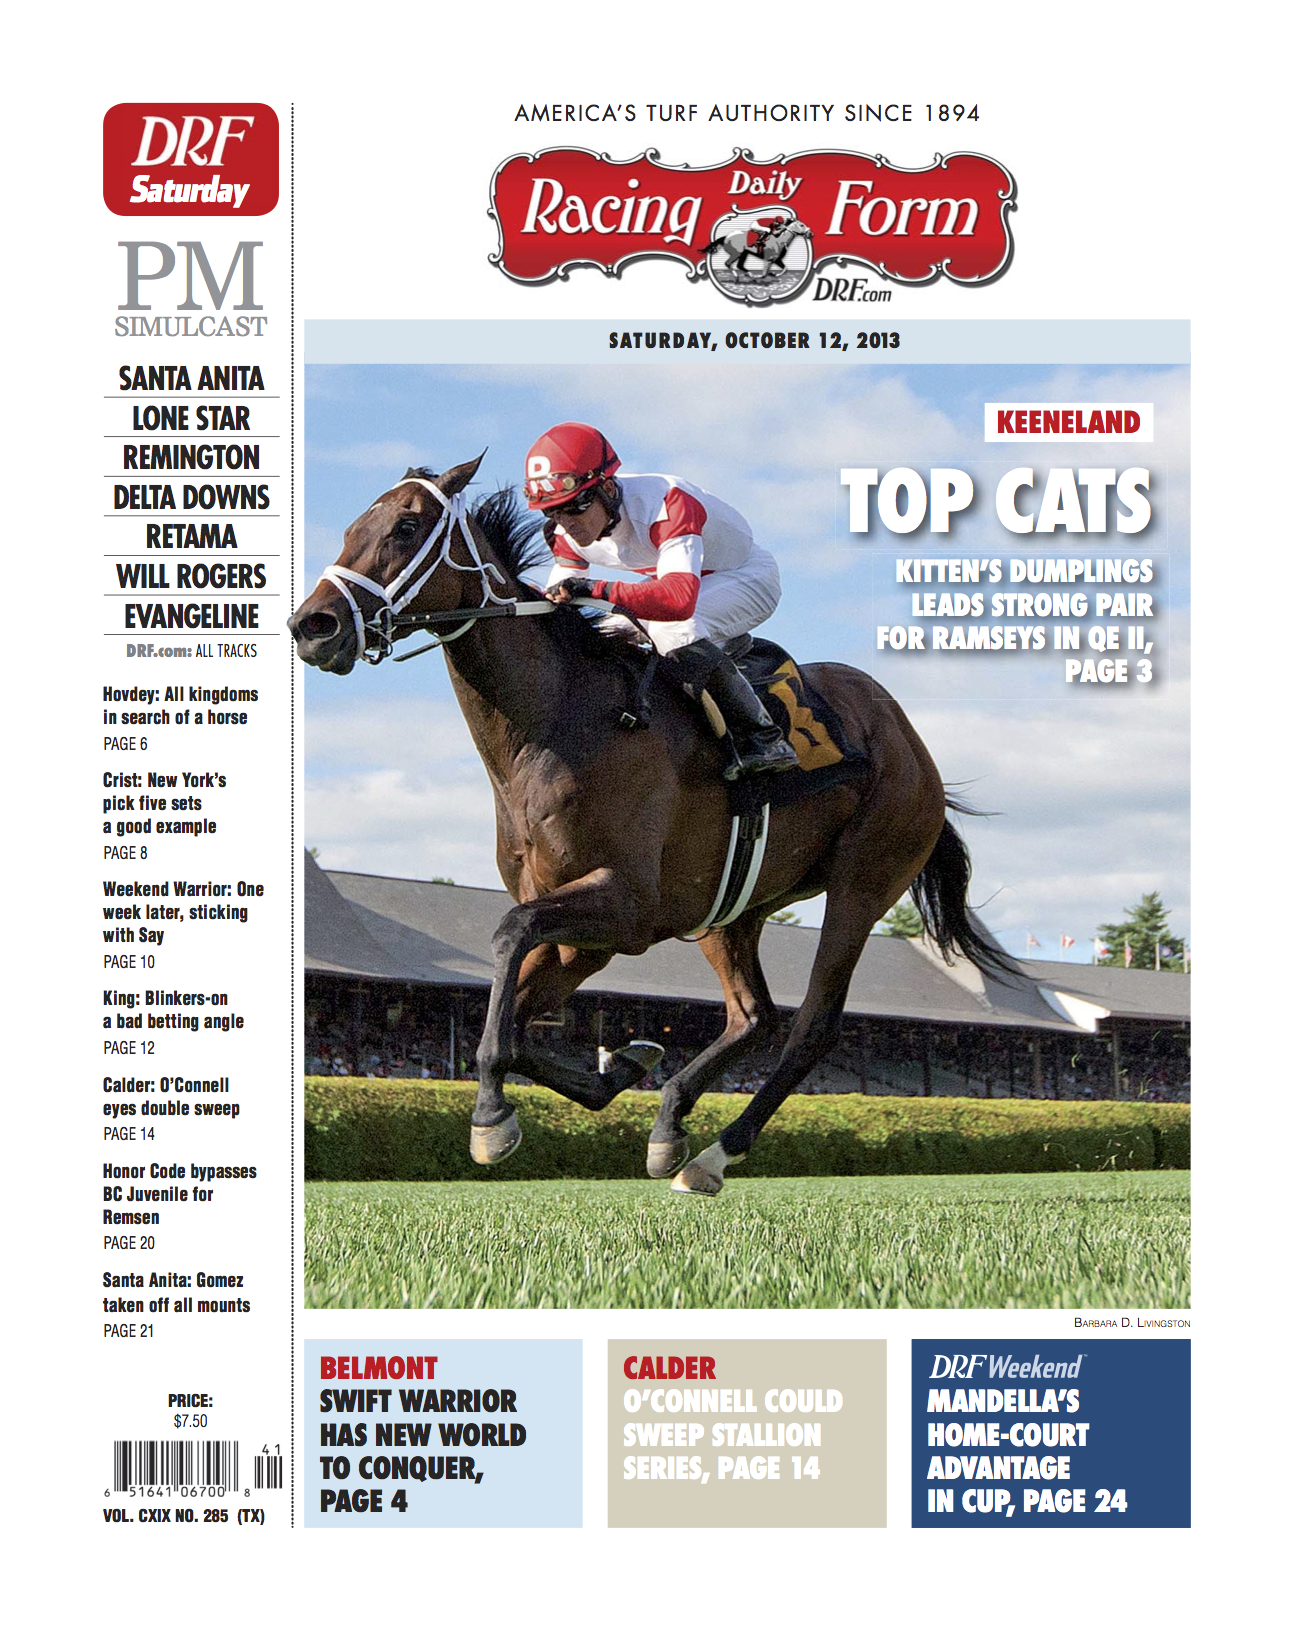 Daily Racing Form Editorial Joseph Conti